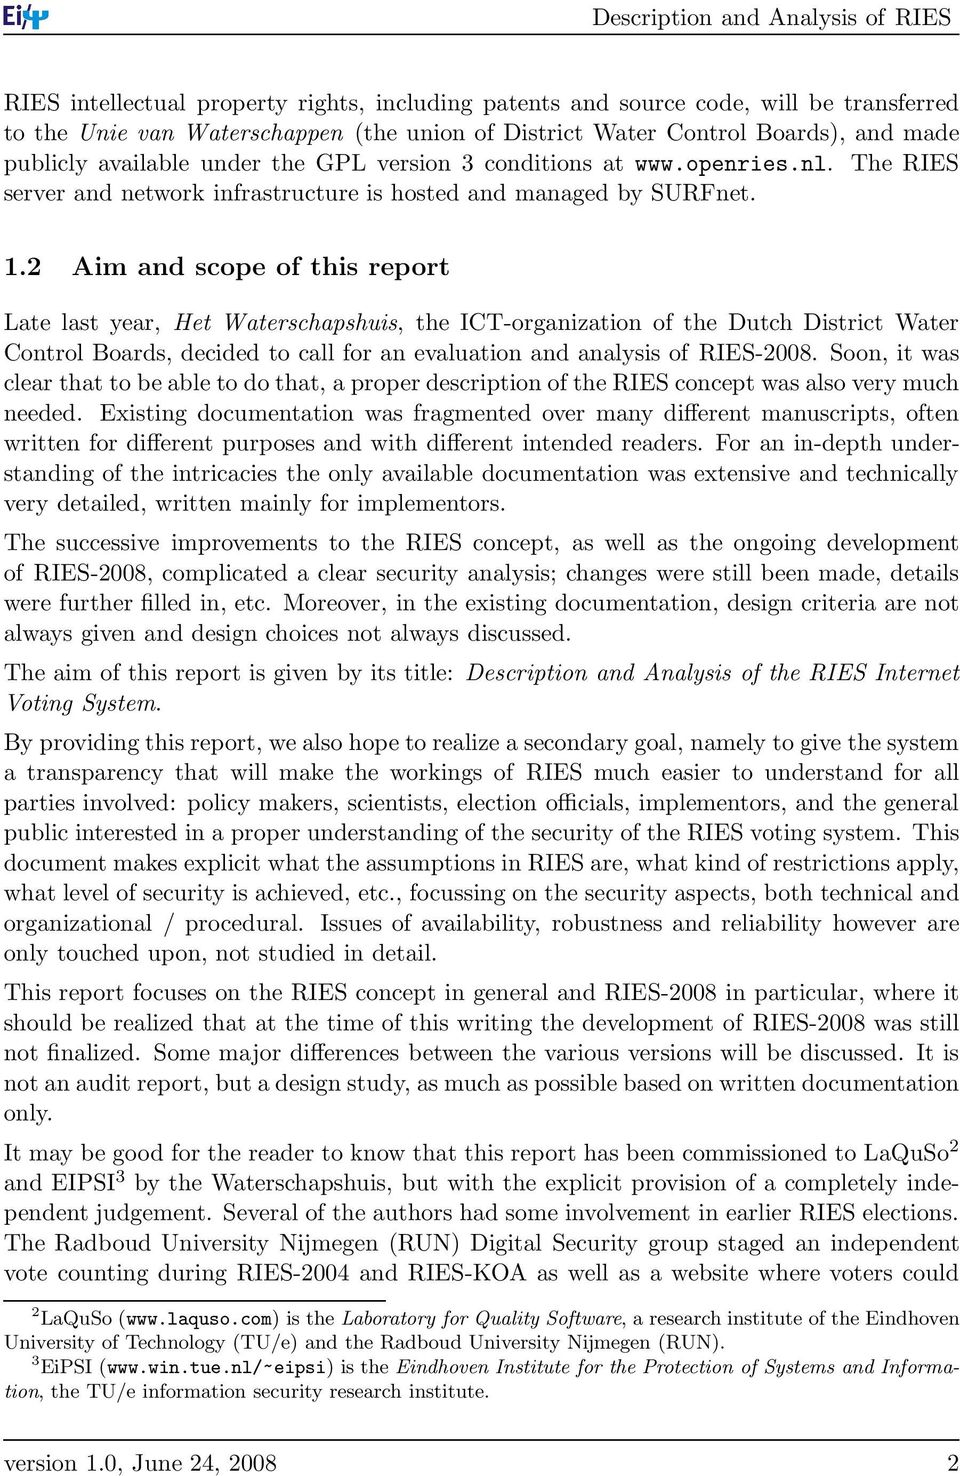 2 Aim and scope of this report Late last year, Het Waterschapshuis, the ICT-organization of the Dutch District Water Control Boards, decided to call for an evaluation and analysis of RIES-2008.